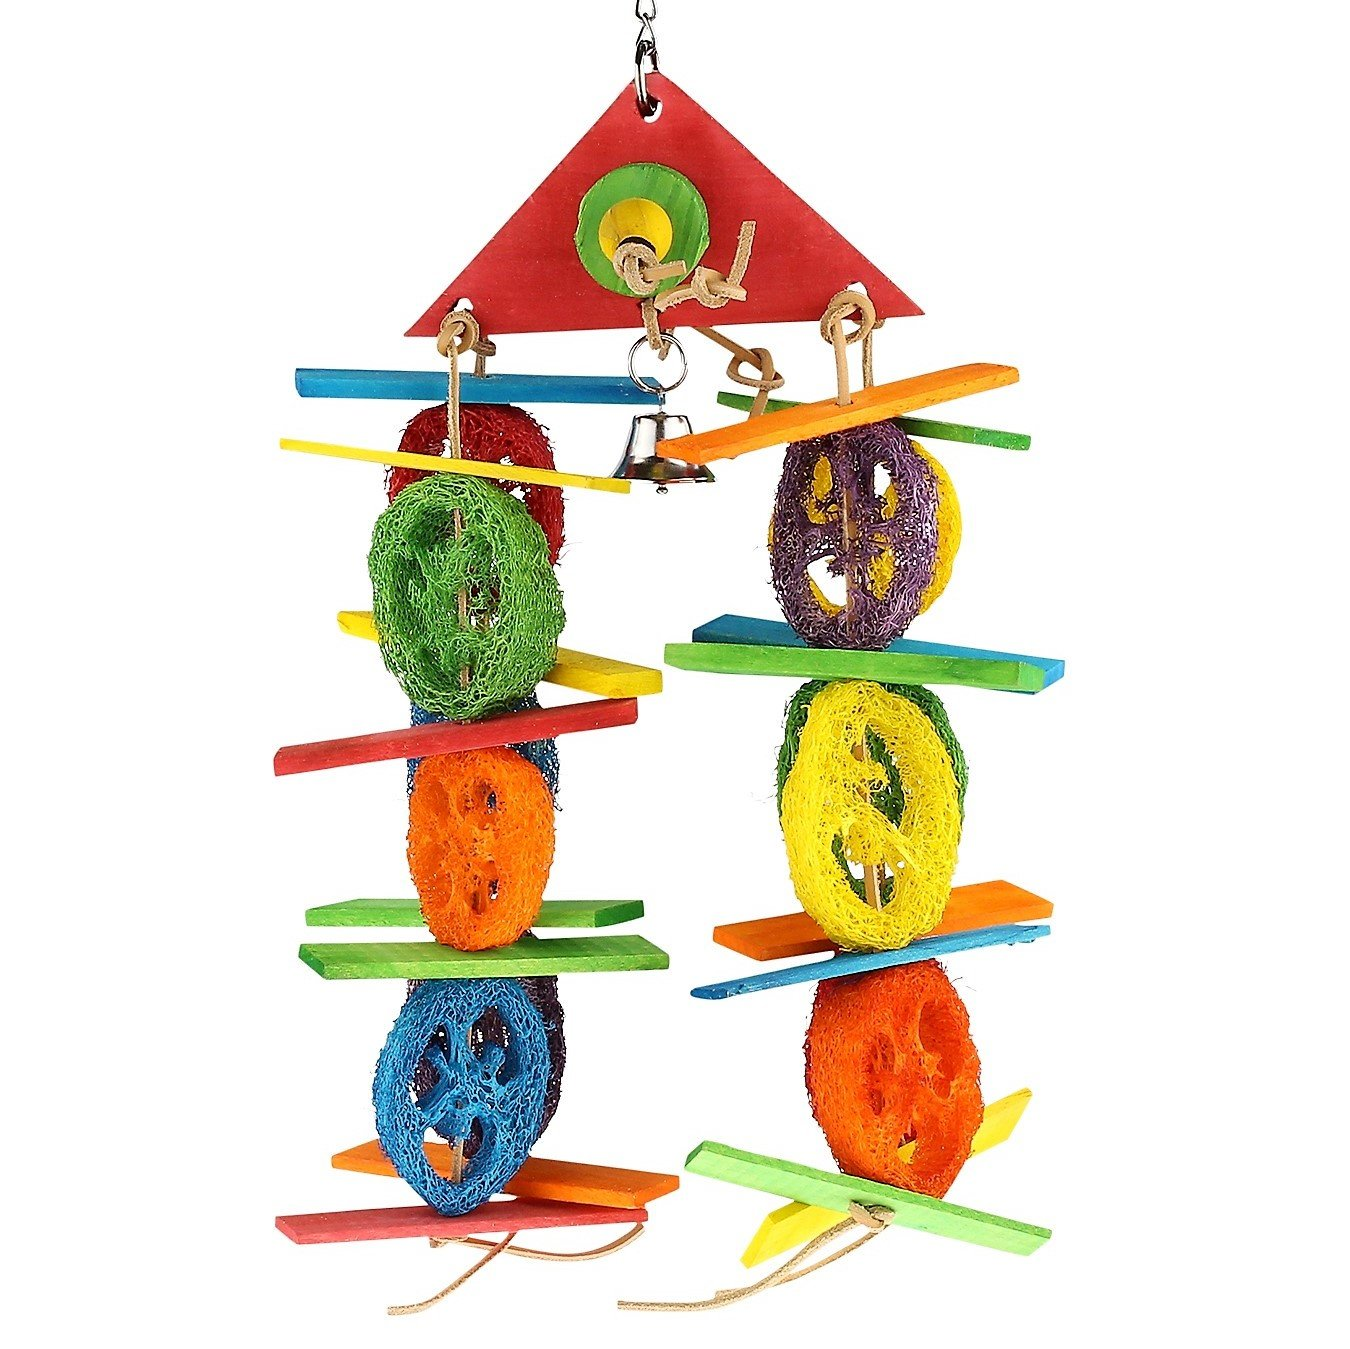 SMiLEiZE Bird Toy Colorful Loofah Leather Wood and Hanging Bell for Medium Birds. A Great Chewing Parrot Cage Bird Toys for Cockatoo African Grey Cockatiel and other Amazon Birds